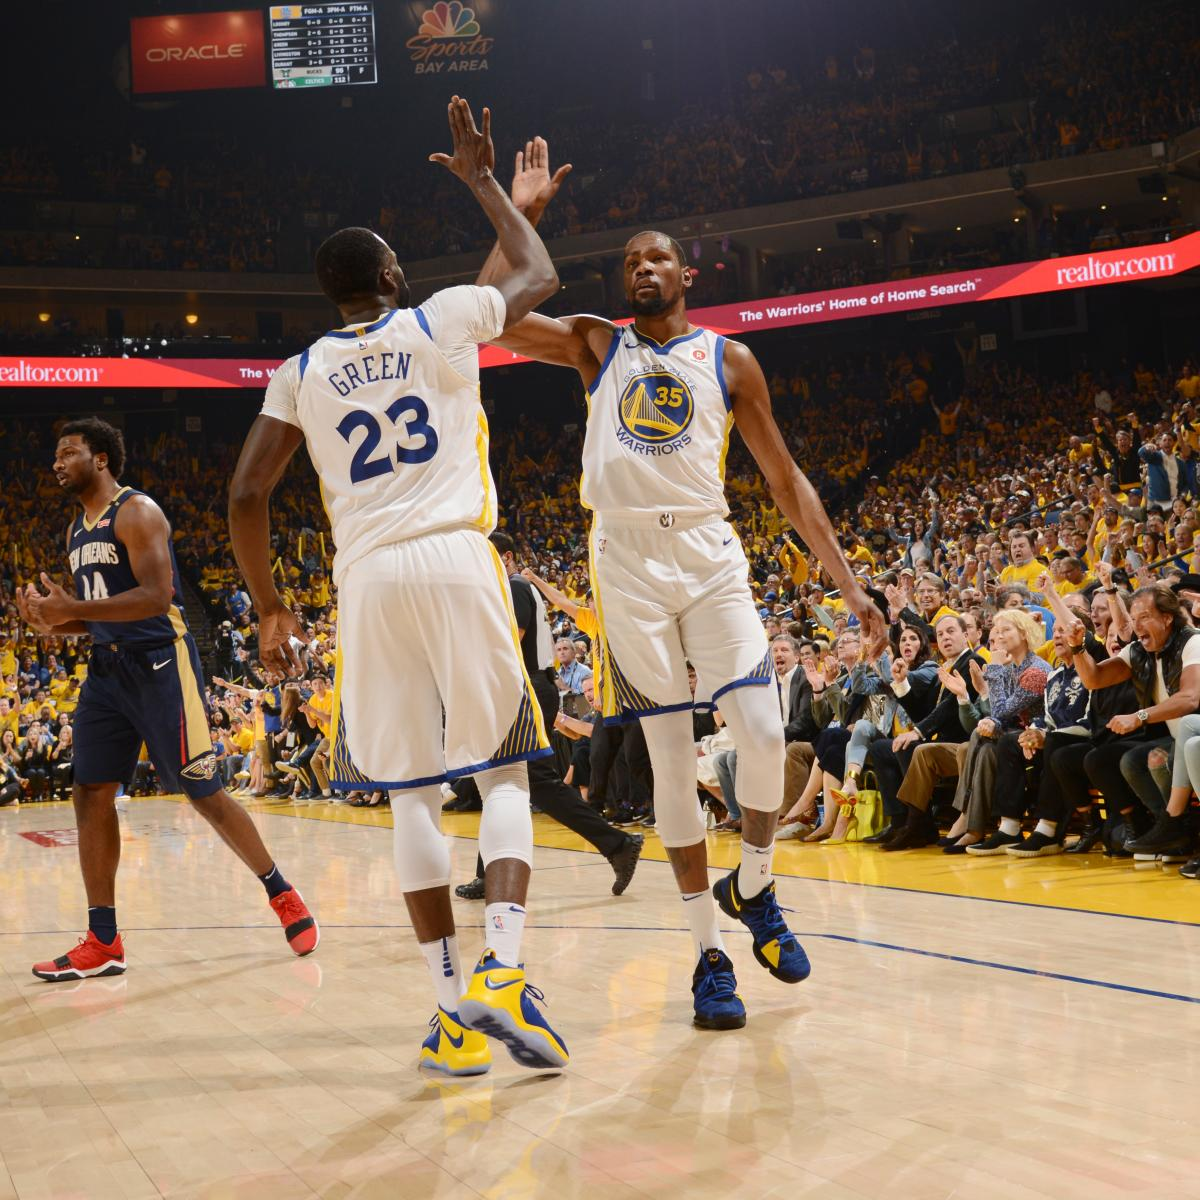 Draymond Green Sent Kevin Durant 4 AM Text Challenging Him After Game 3 Loss | Bleacher Report | Latest News, Videos and Highlights